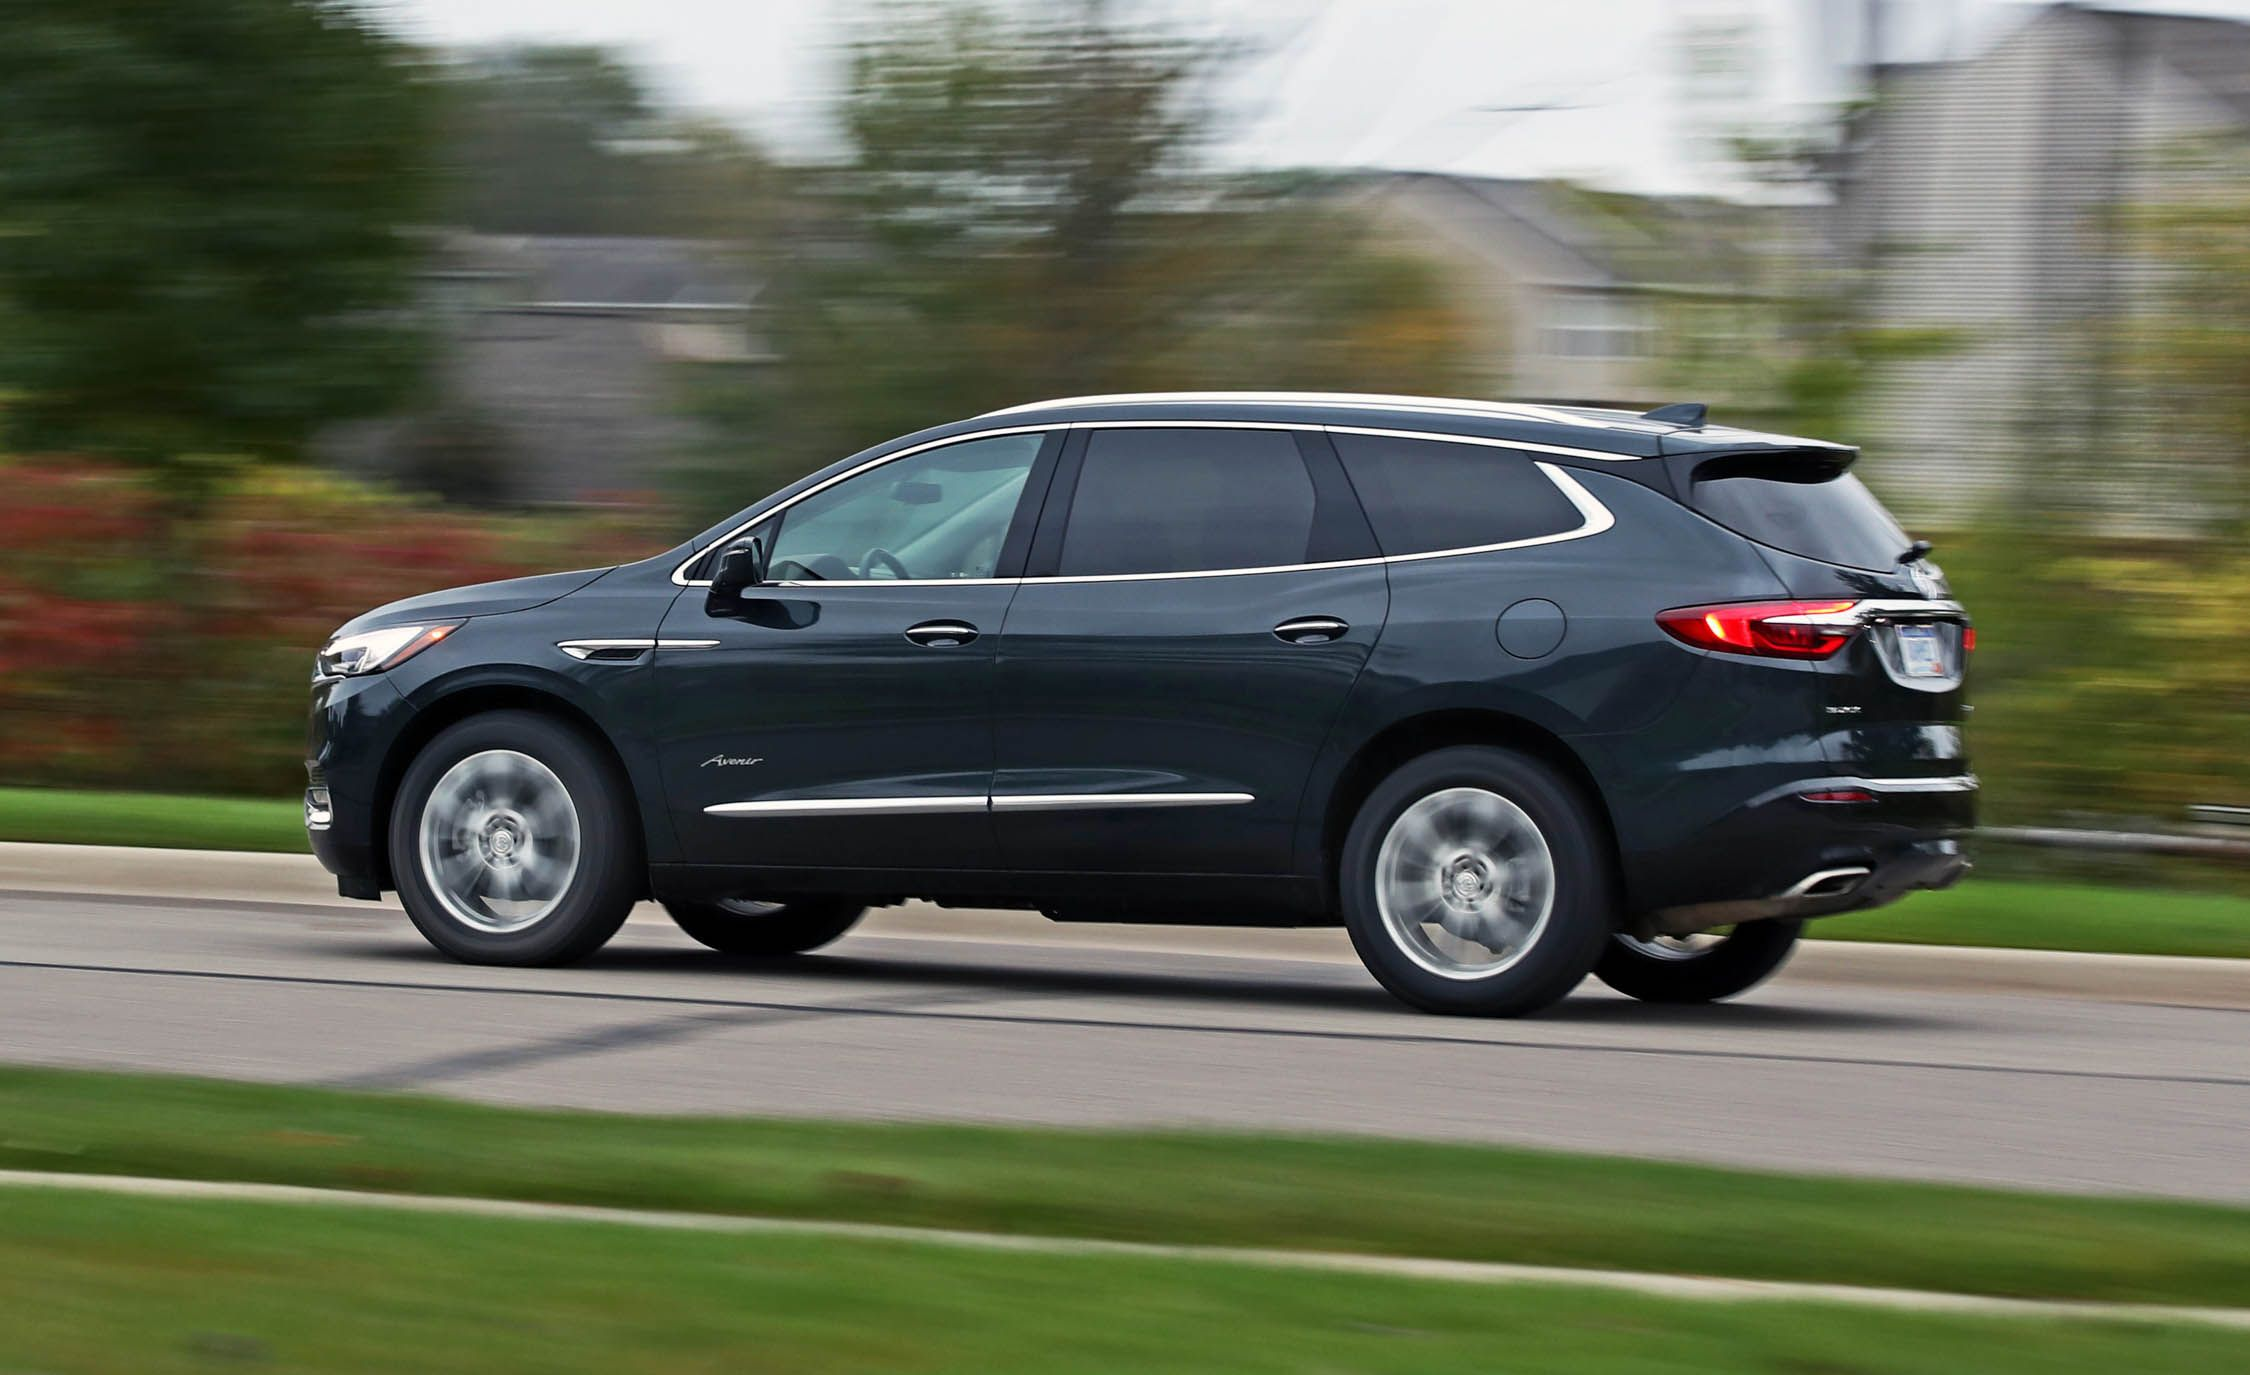 2018 Buick Enclave Fuel Economy And Driving Range Review Car Driver